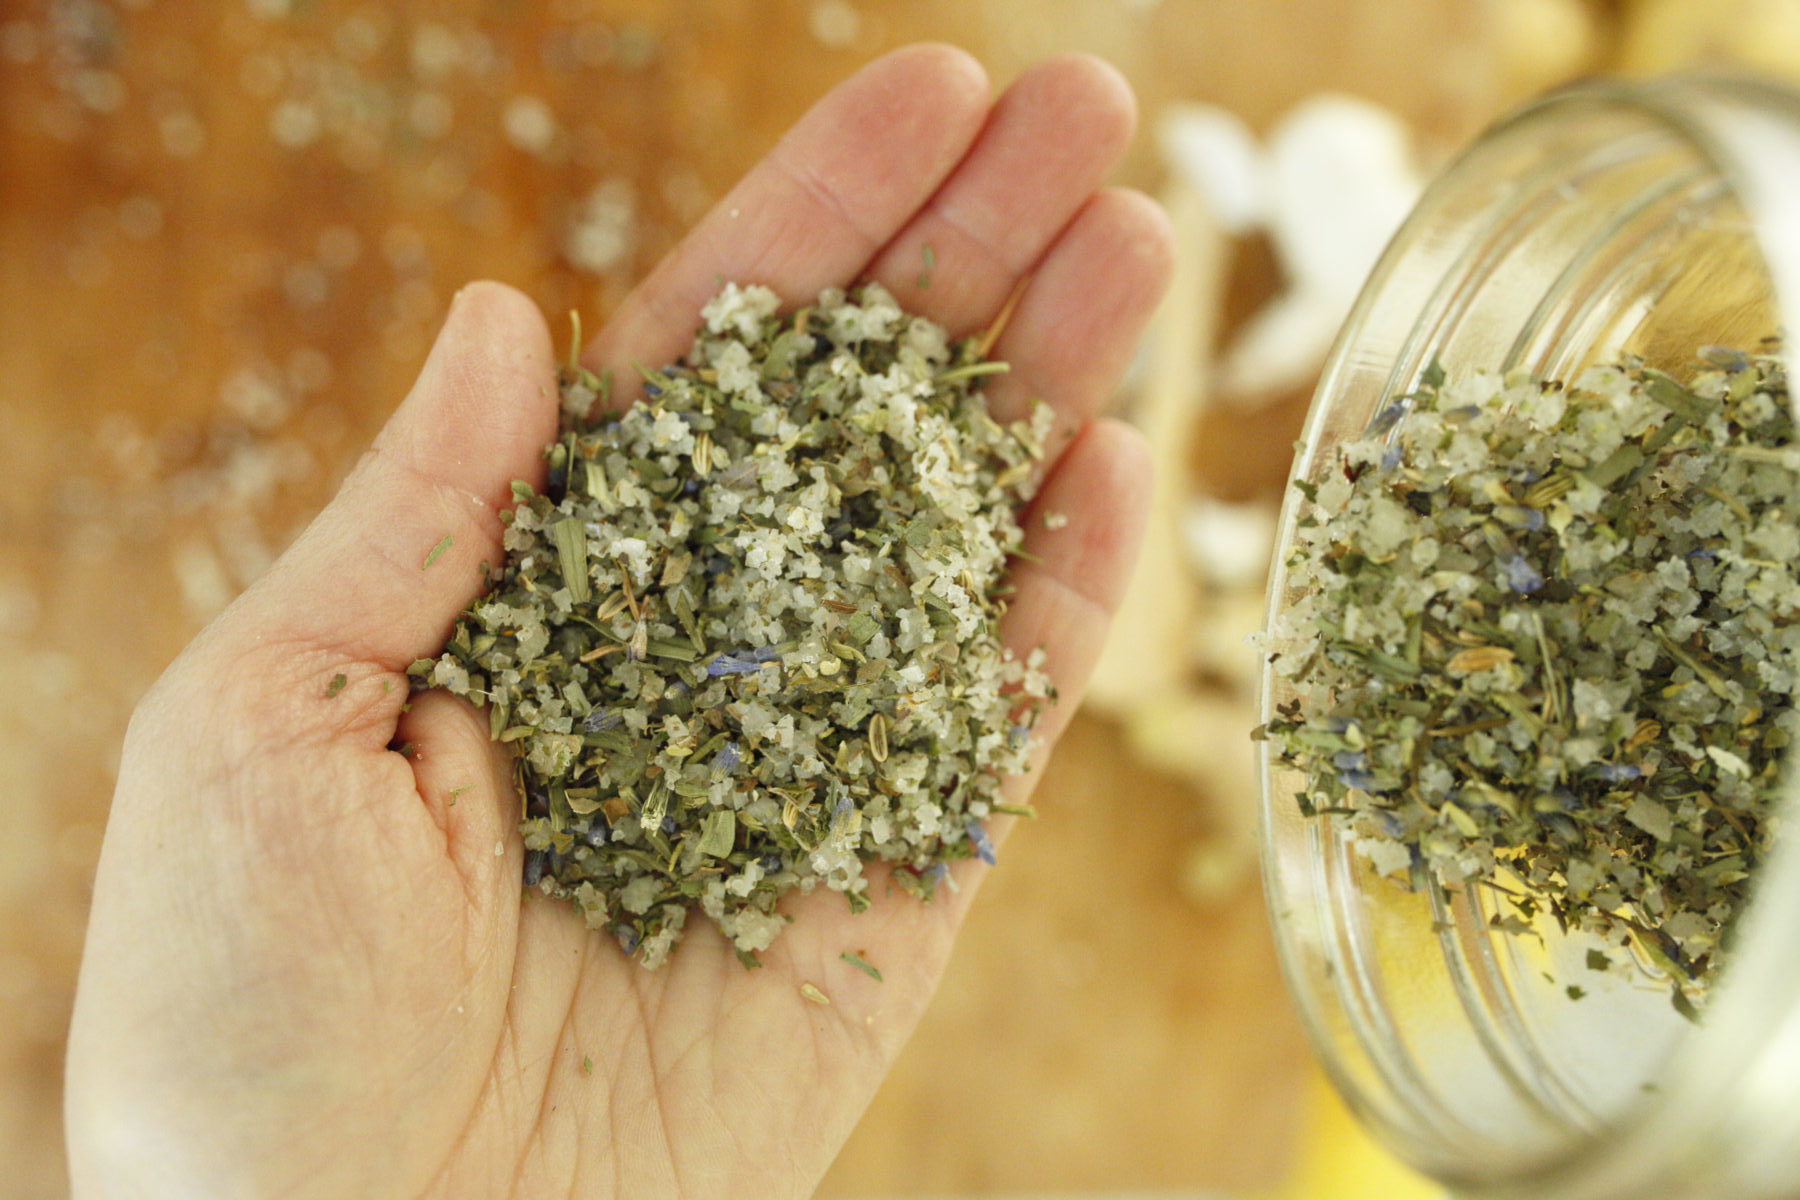 How To Make DIY Herbal Culinary Salts | Herbal Academy | Start stepping up the game at mealtime by making your very own DIY herbal culinary salts. They are incredibly easy to prepare and delightful to use!